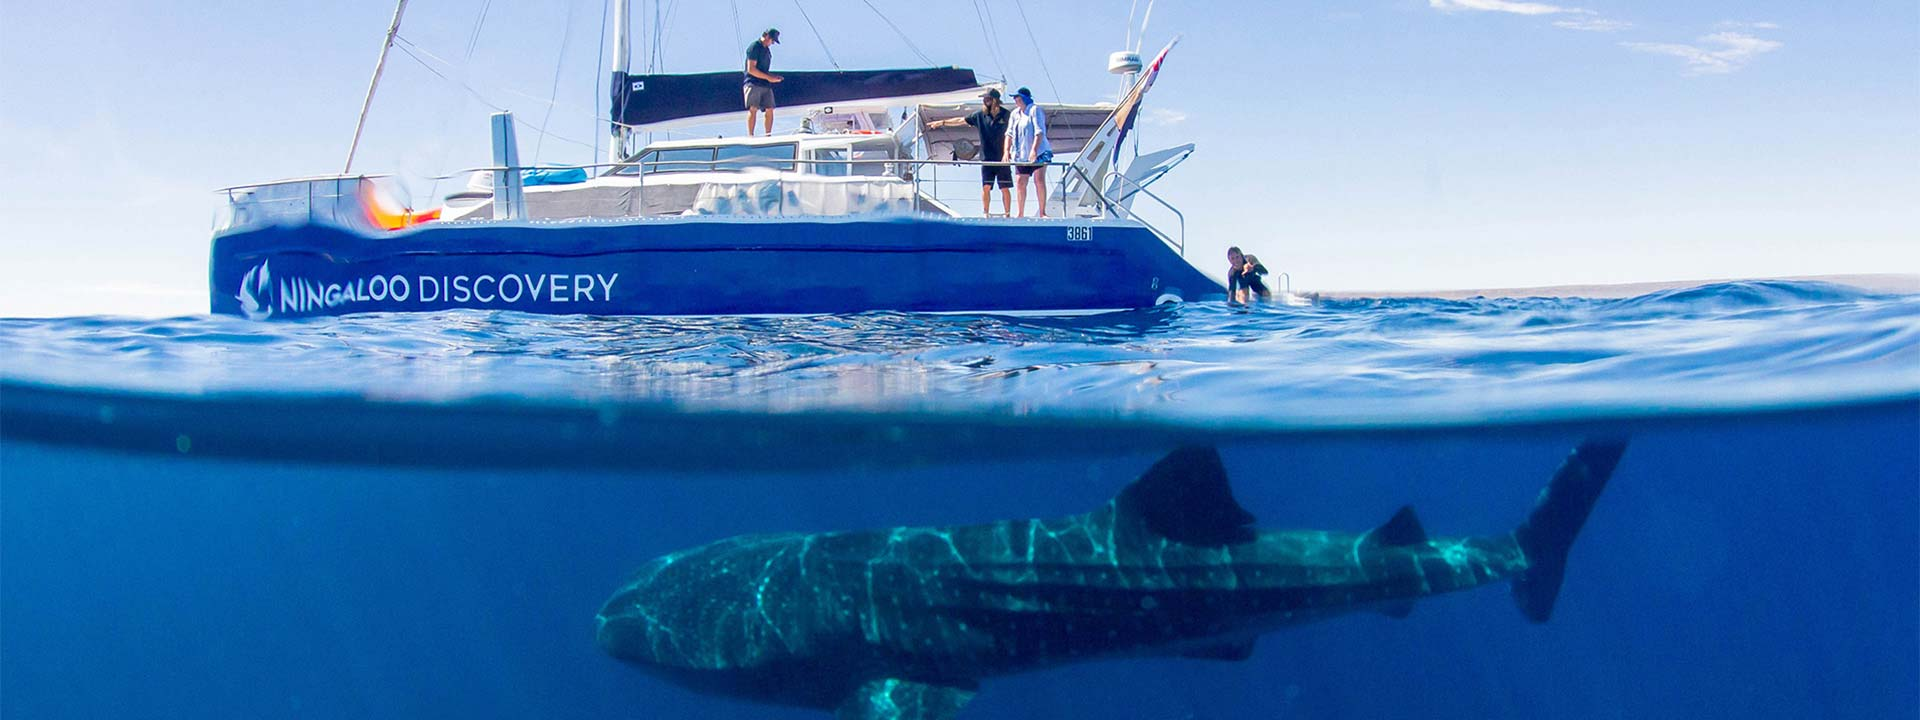 Join Ningaloo Discovery for a once in a lifetime experience